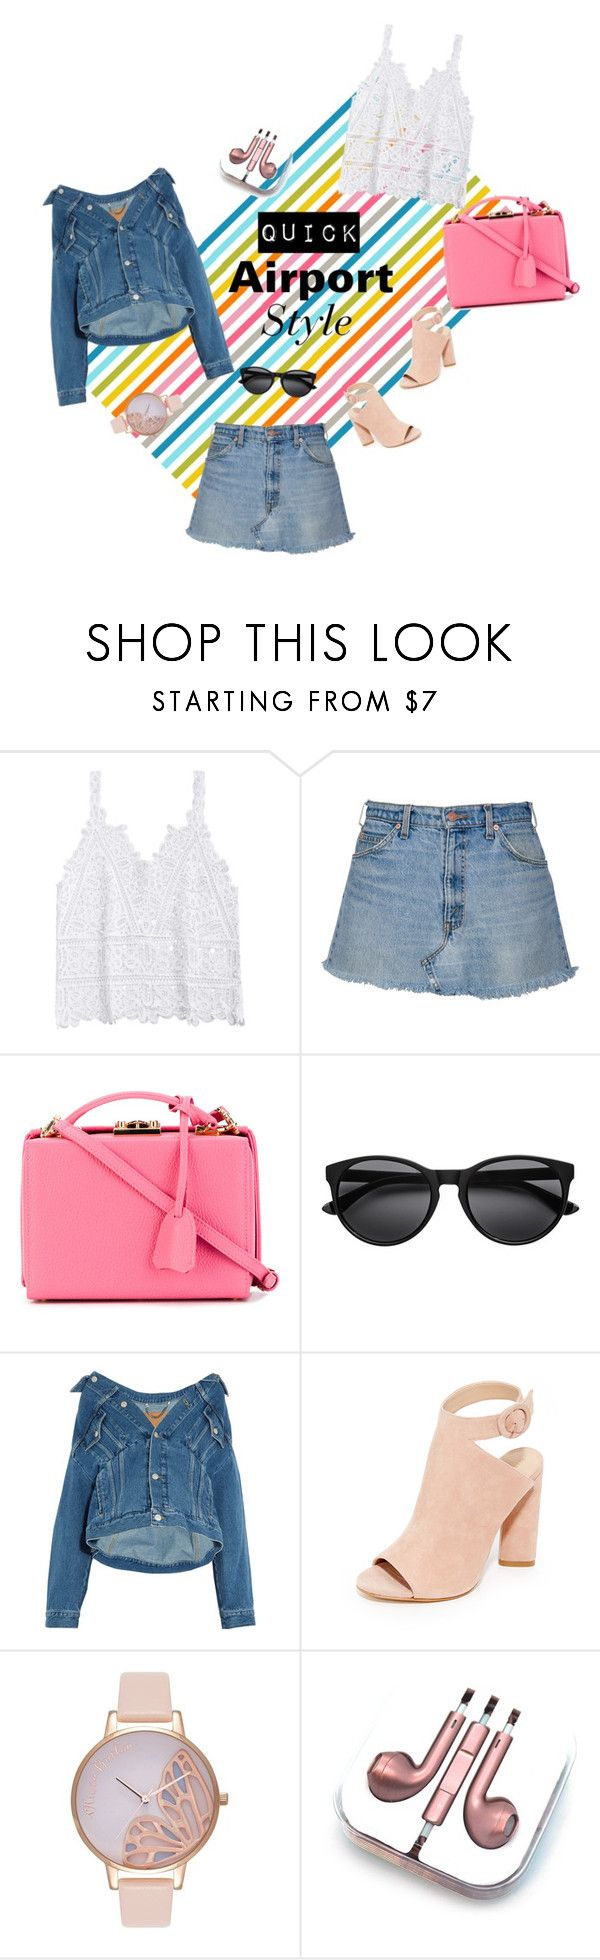 """Quick Airport Style #1"" by bebebelabee on Polyvore featuring Mark Cross, Balenciaga, Kendall + Kylie, Olivia Burton and PhunkeeTree"